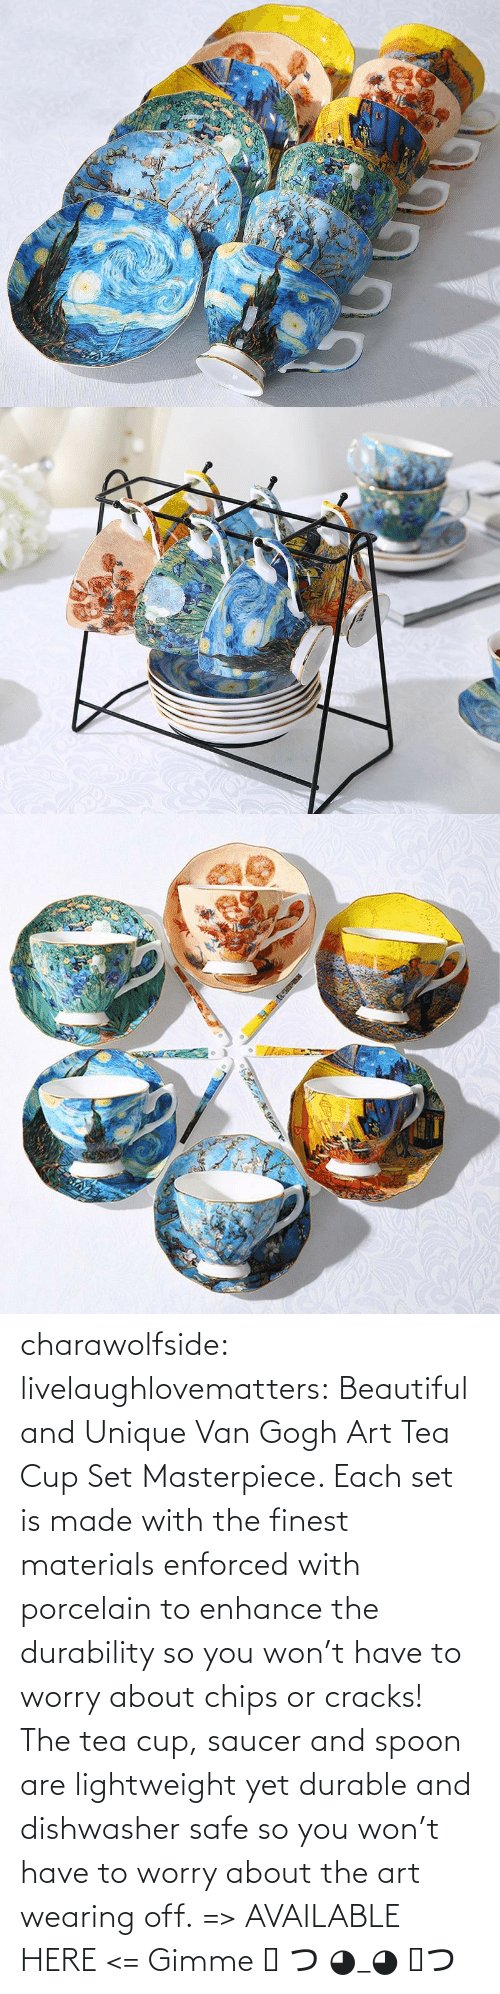 worry: charawolfside:  livelaughlovematters: Beautiful and Unique Van Gogh Art Tea Cup Set Masterpiece. Each set is made with the finest materials enforced with porcelain to enhance the durability so you won't have to worry about chips or cracks! The tea cup, saucer and spoon are lightweight yet durable and dishwasher safe so you won't have to worry about the art wearing off. => AVAILABLE HERE <=    Gimme ༼ つ ◕_◕ ༽つ